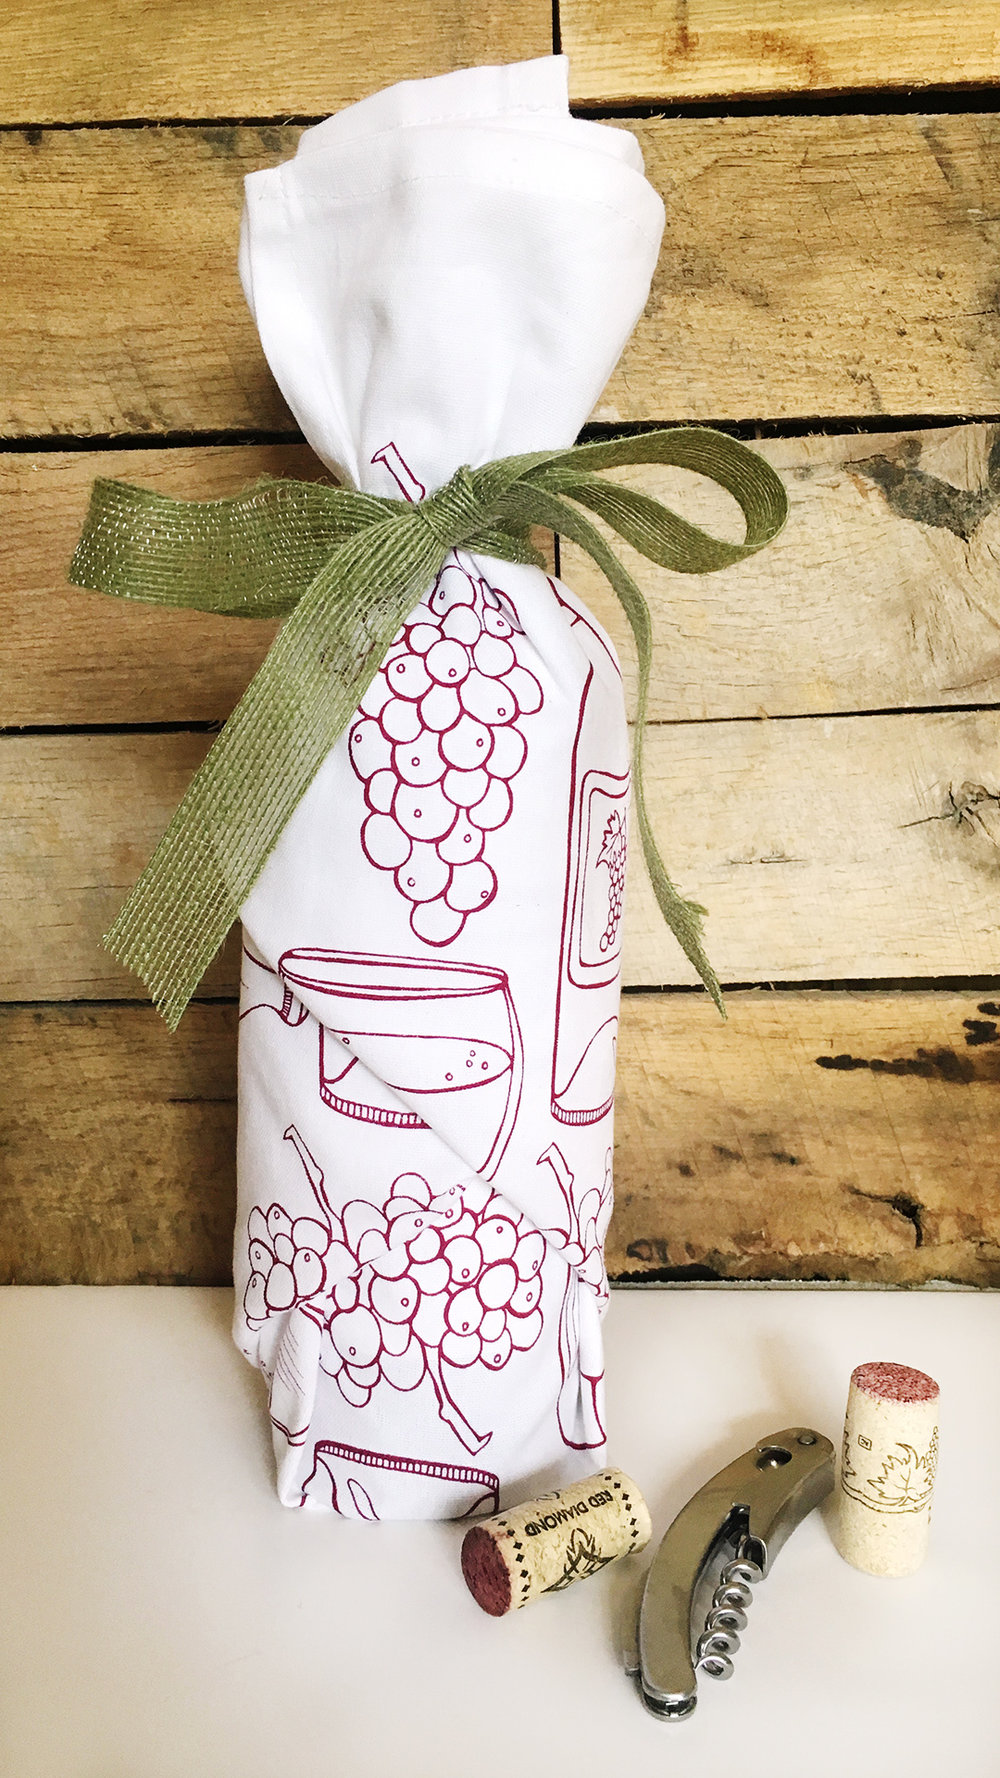 Wrap a bottle of wine in this wine tea towel and you've got an instant holiday hostess gift!